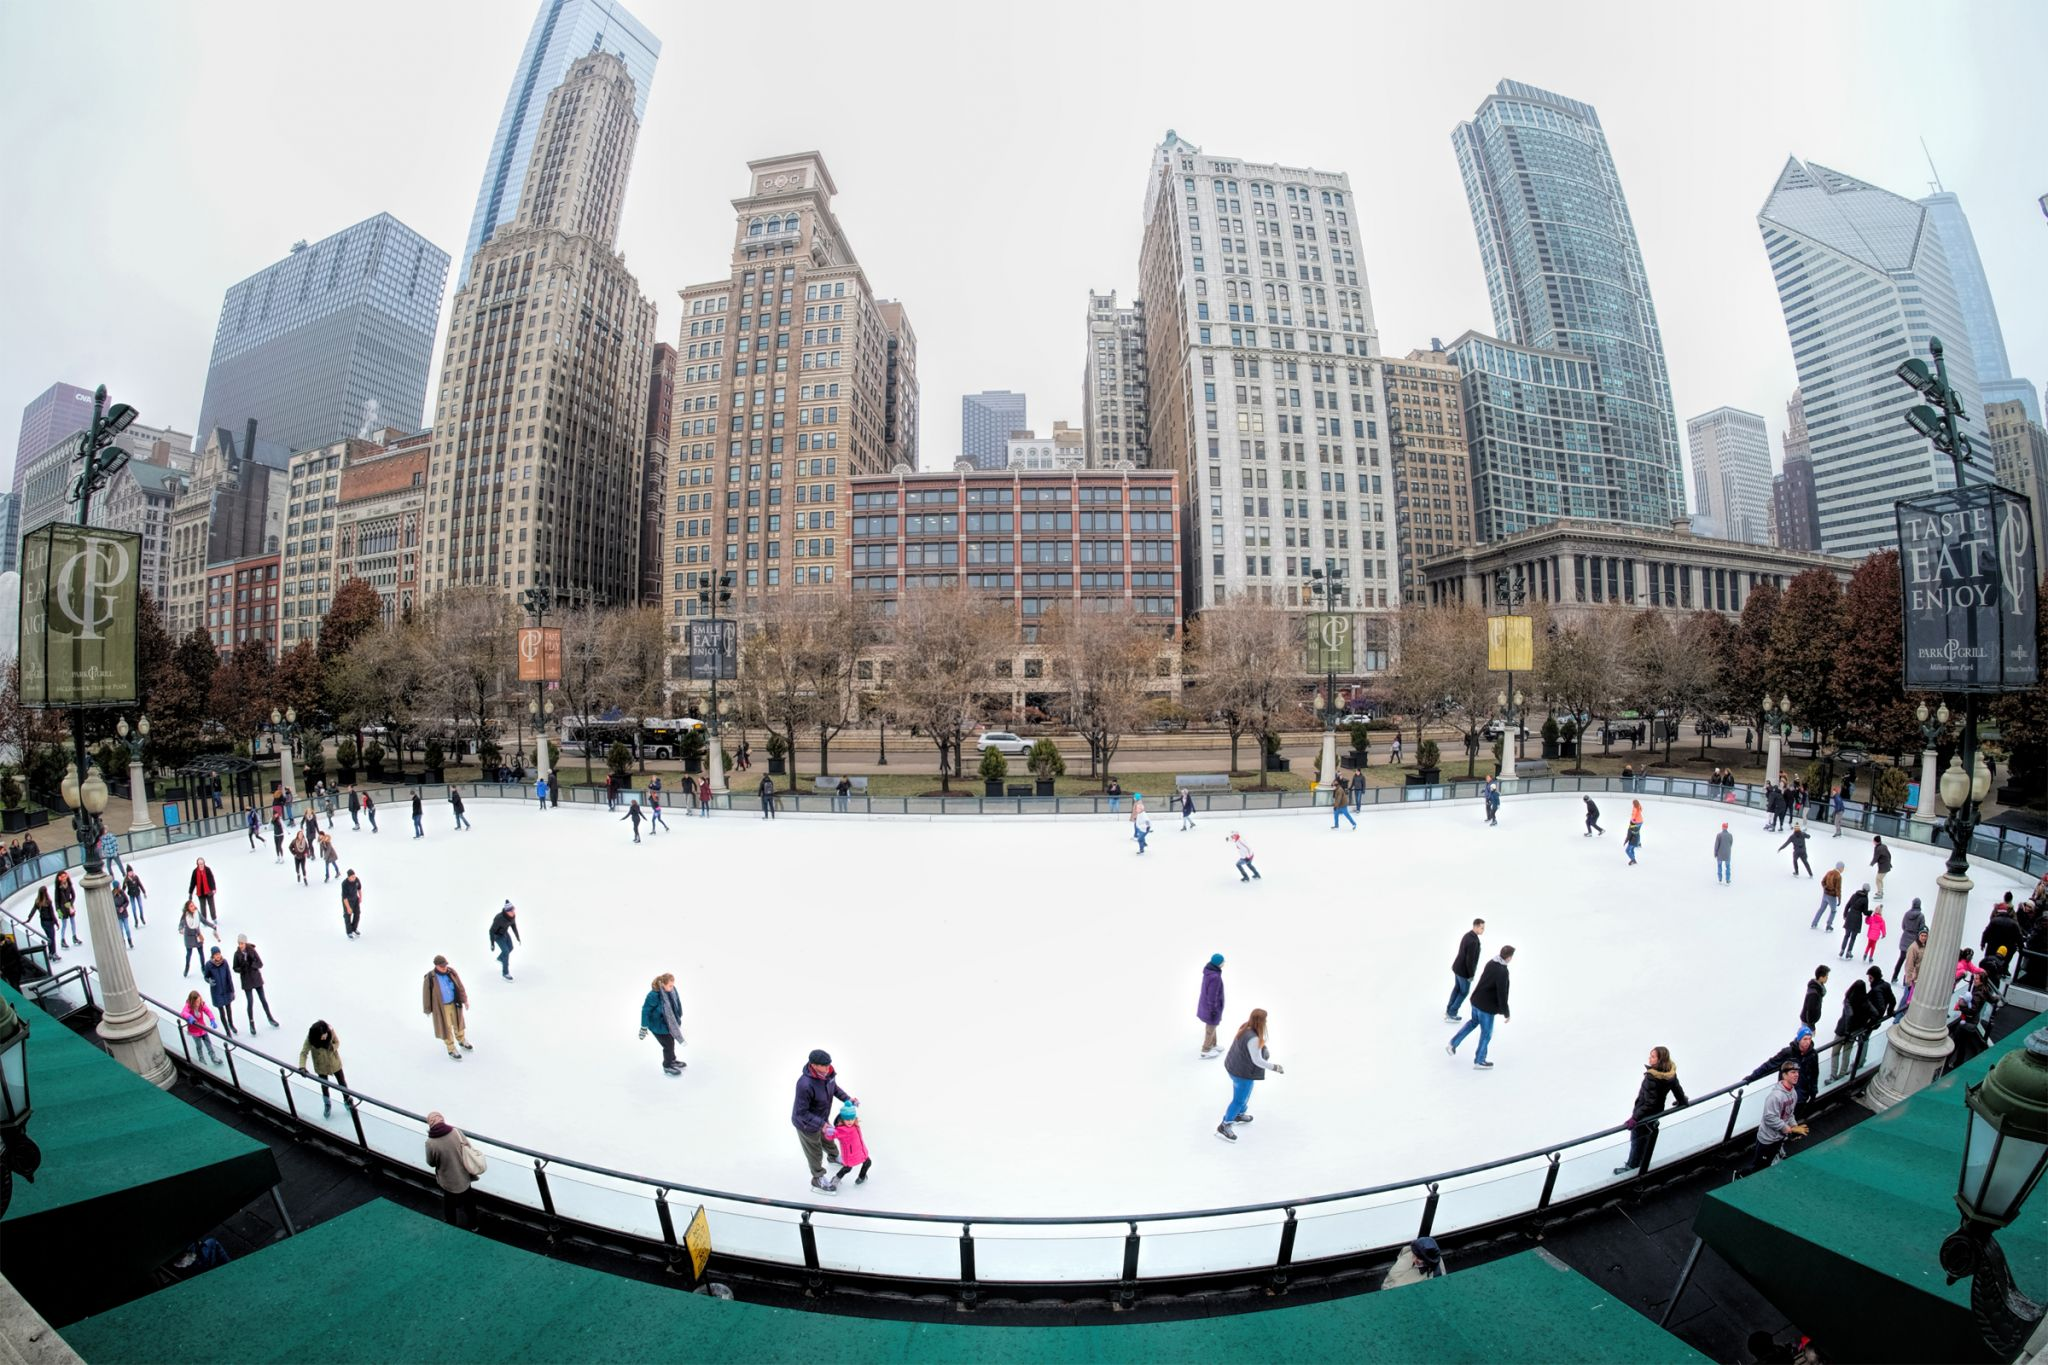 Millenium Park Ice Skating, USA